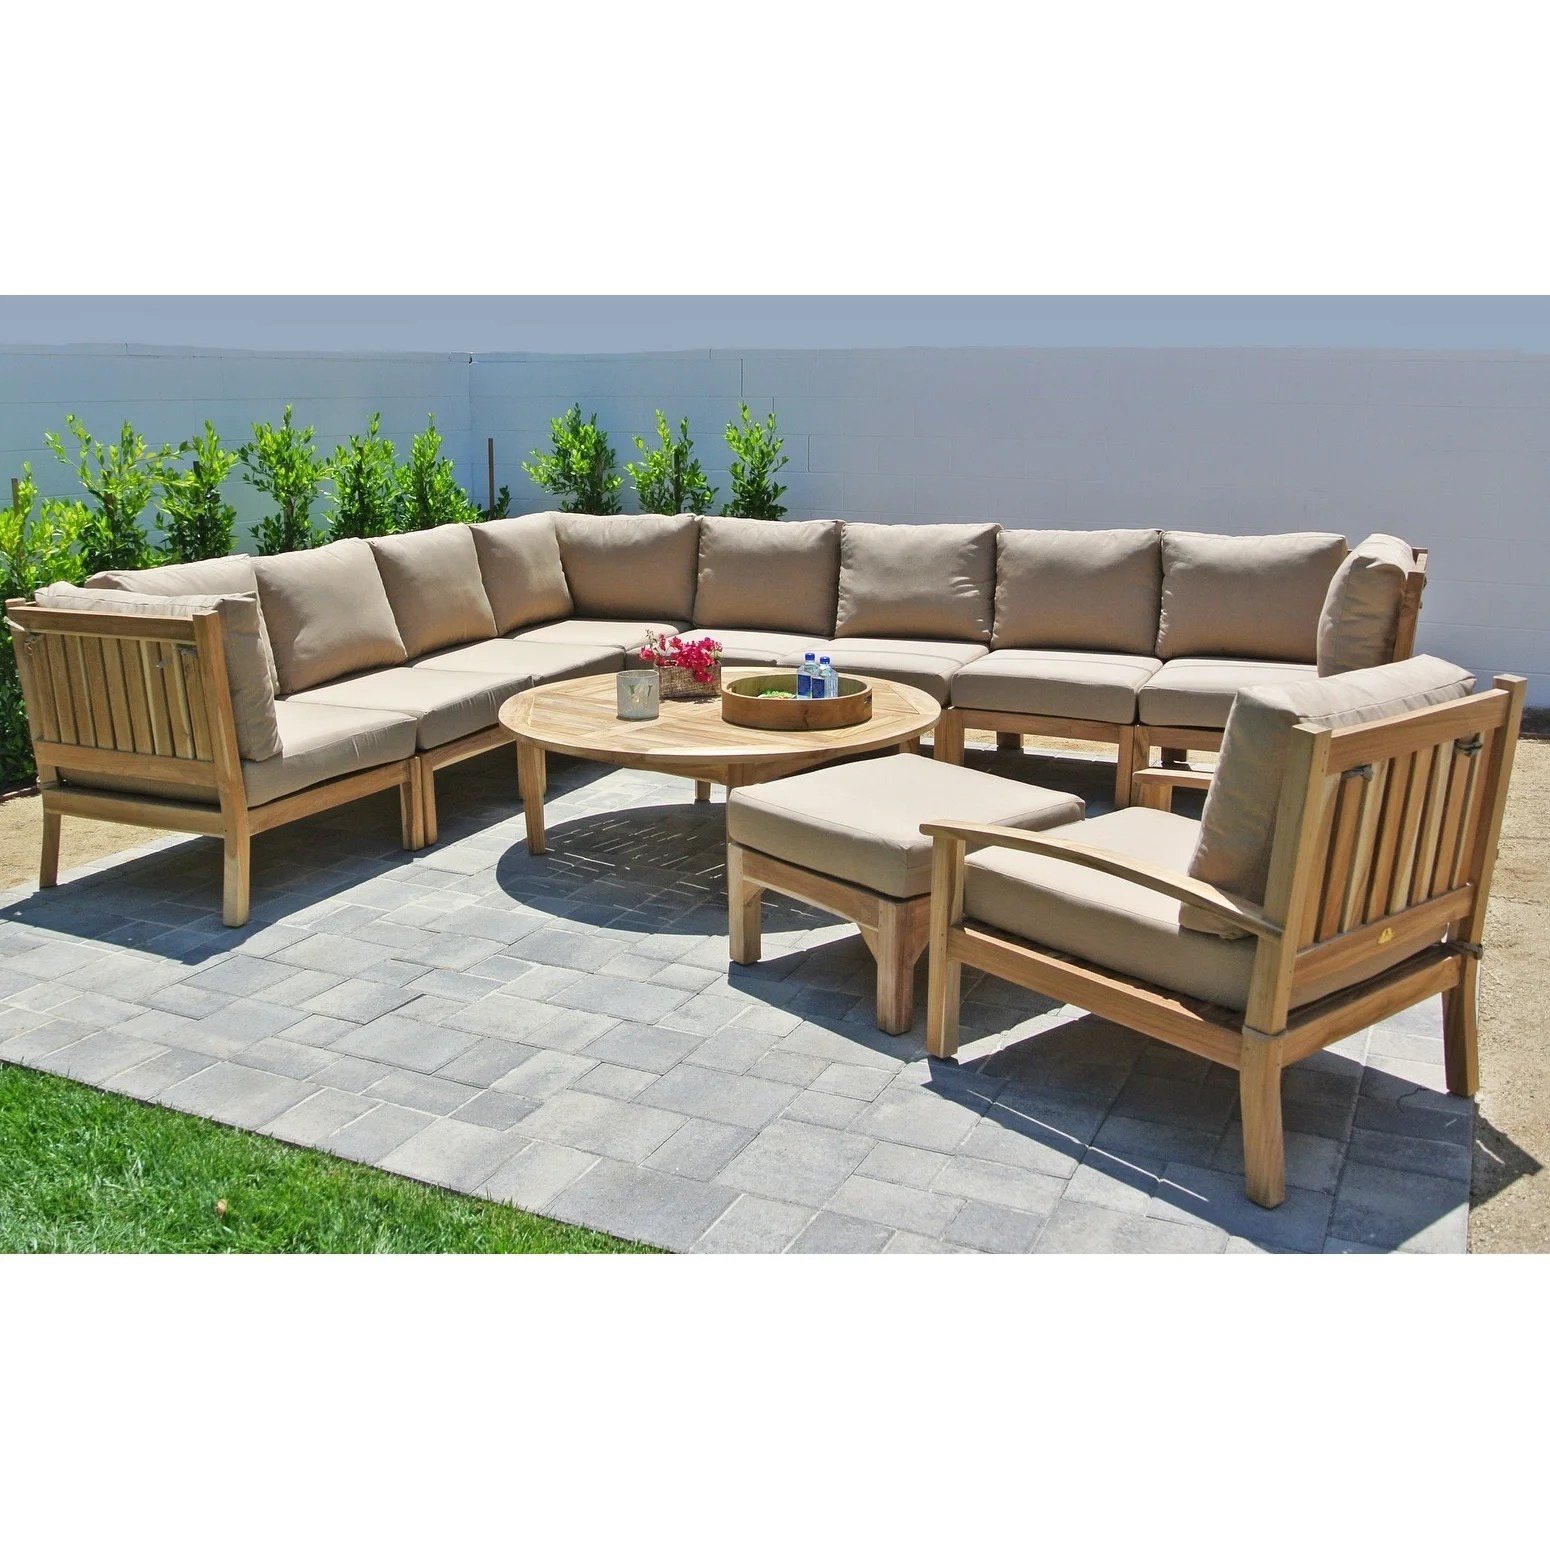 Hunington Furniture 11pc Huntington Teak Outdoor Patio Furniture Sectional Seating Group With 52